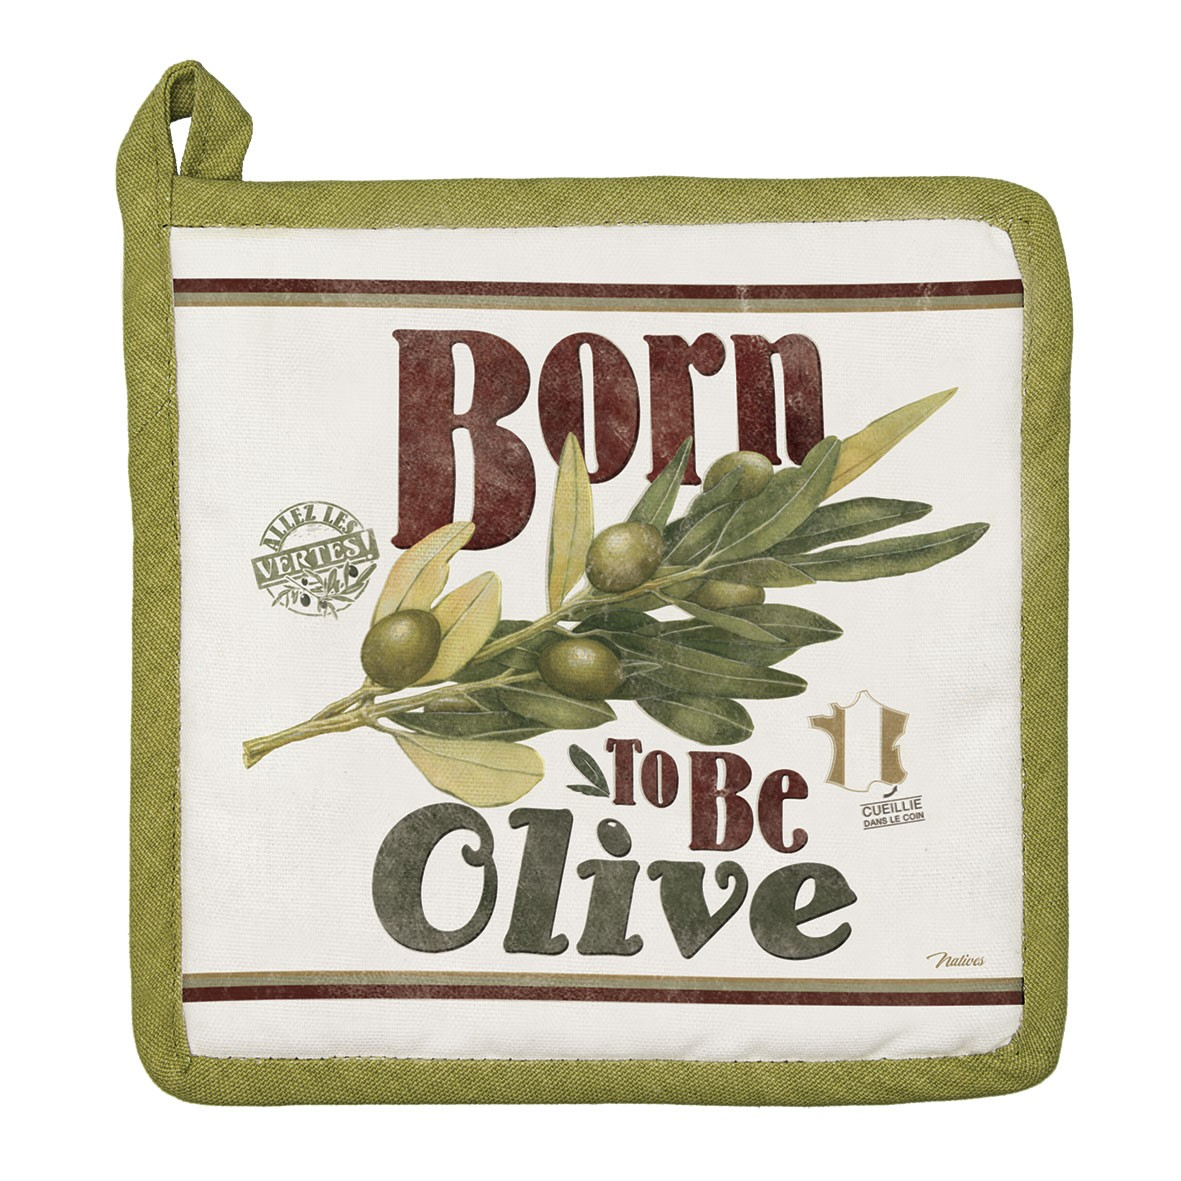 Manique de cuisine born to be olive natives dans tes r ves for Manique de cuisine